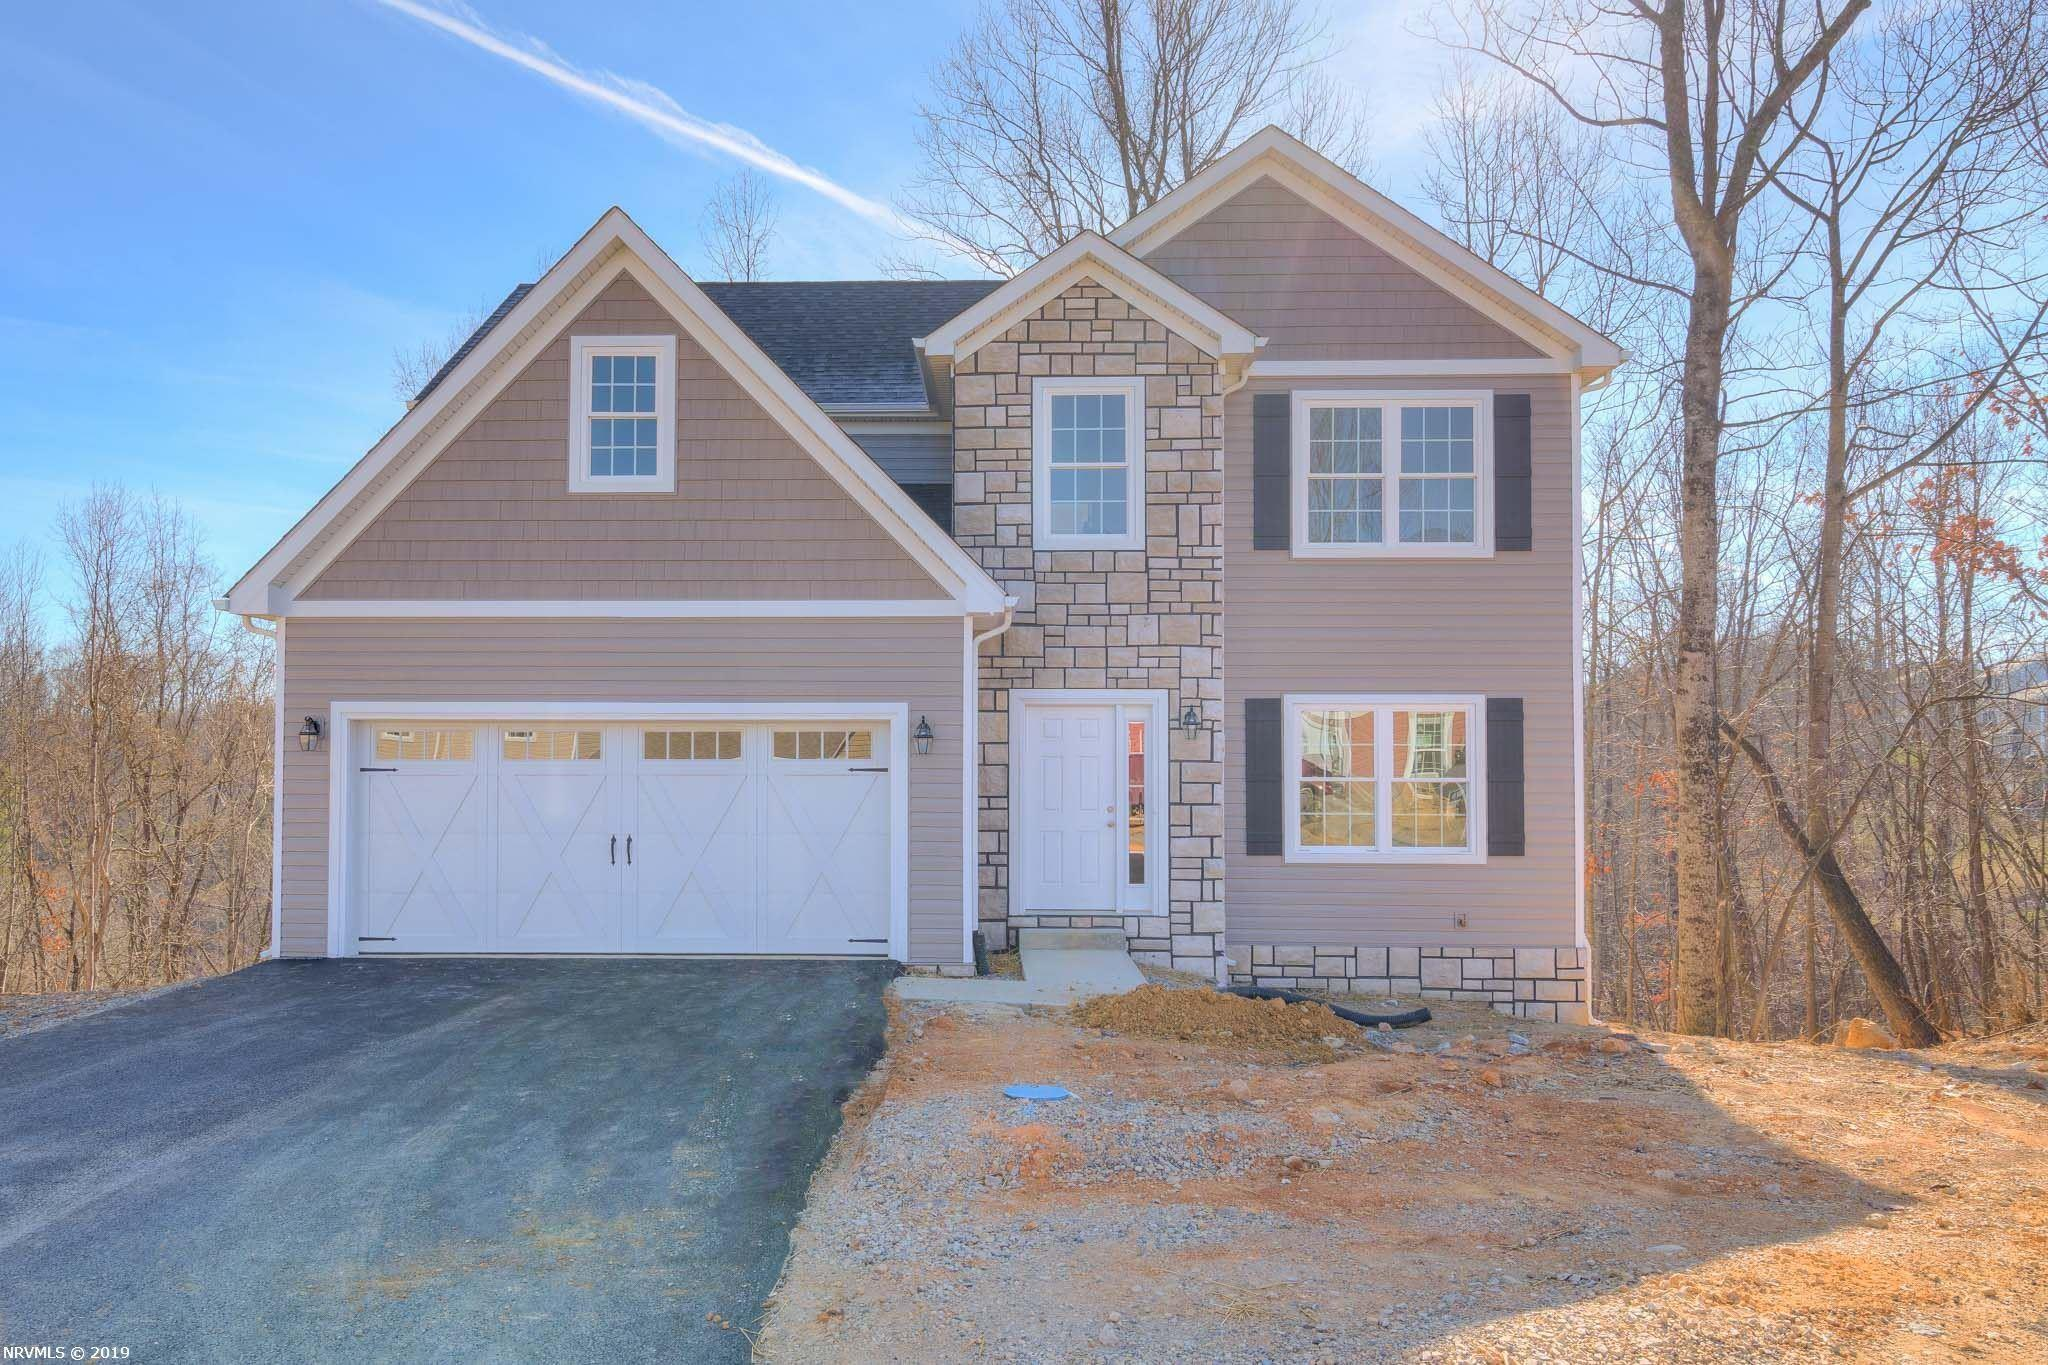 This beautiful brand new home has a wonderful open floor plan and is situated on a private street. The large kitchen with its stainless steal appliances has tons of room for you chefs. With 4 bedroom and a full unfinished basement you have plenty of space to grow. Great views off the deck. Come enjoy all that the Beautiful Walnut Creek has to offer!! Walking Trails, Green space, Playground and more. Why buy a old home when you can buy a brand new energy efficient home! Call to schedule an appointment today! Still time to choose all colors.